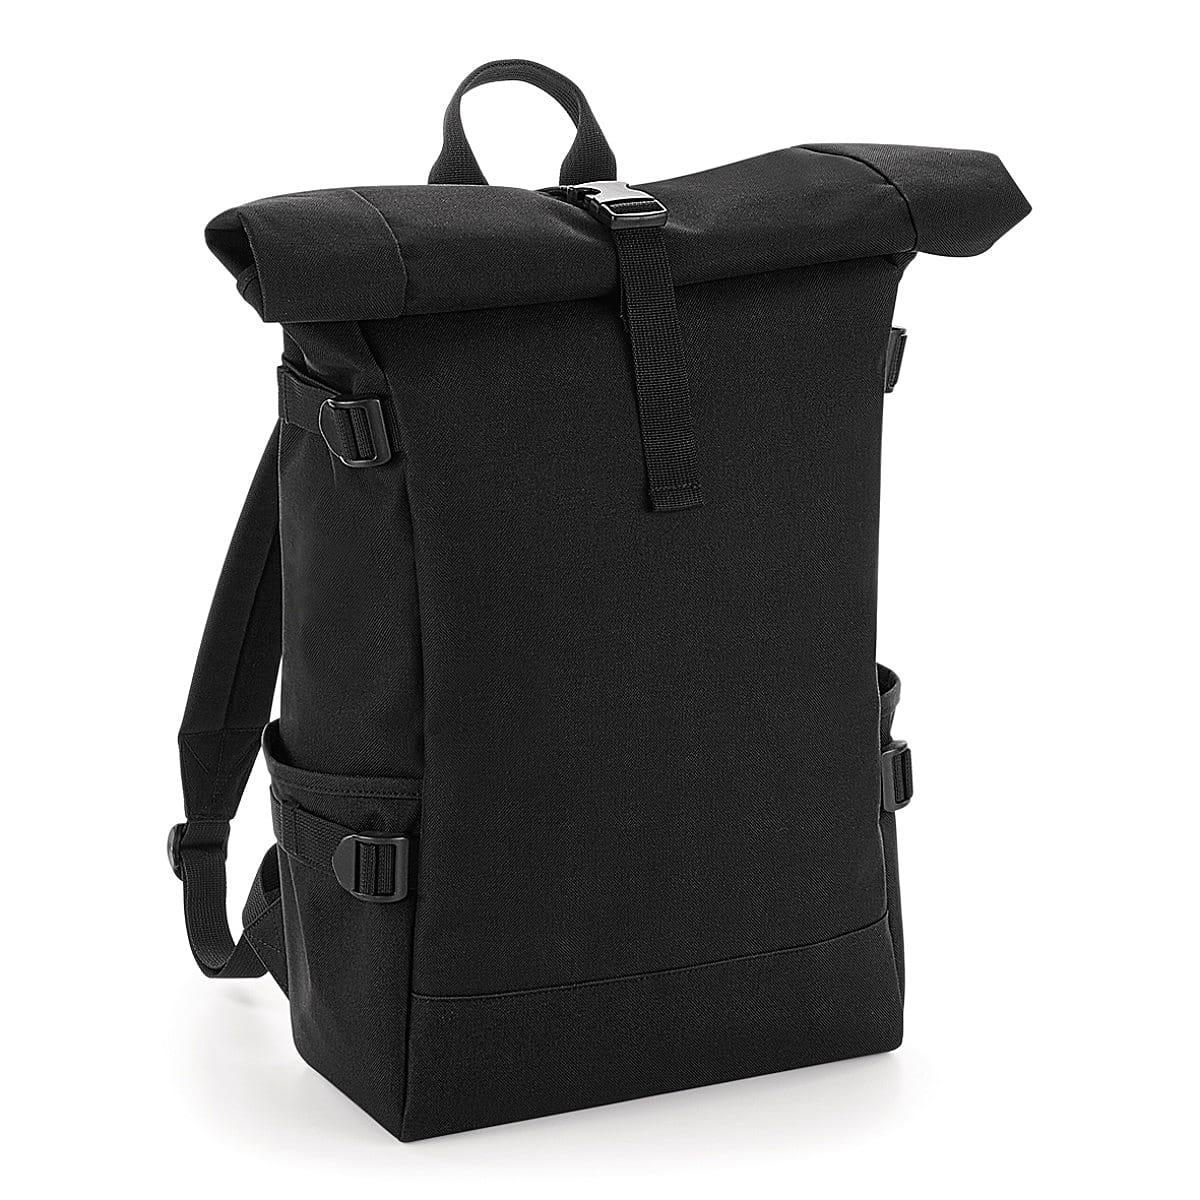 Bagbase Block Roll-Top Backpack in Black (Product Code: BG858)